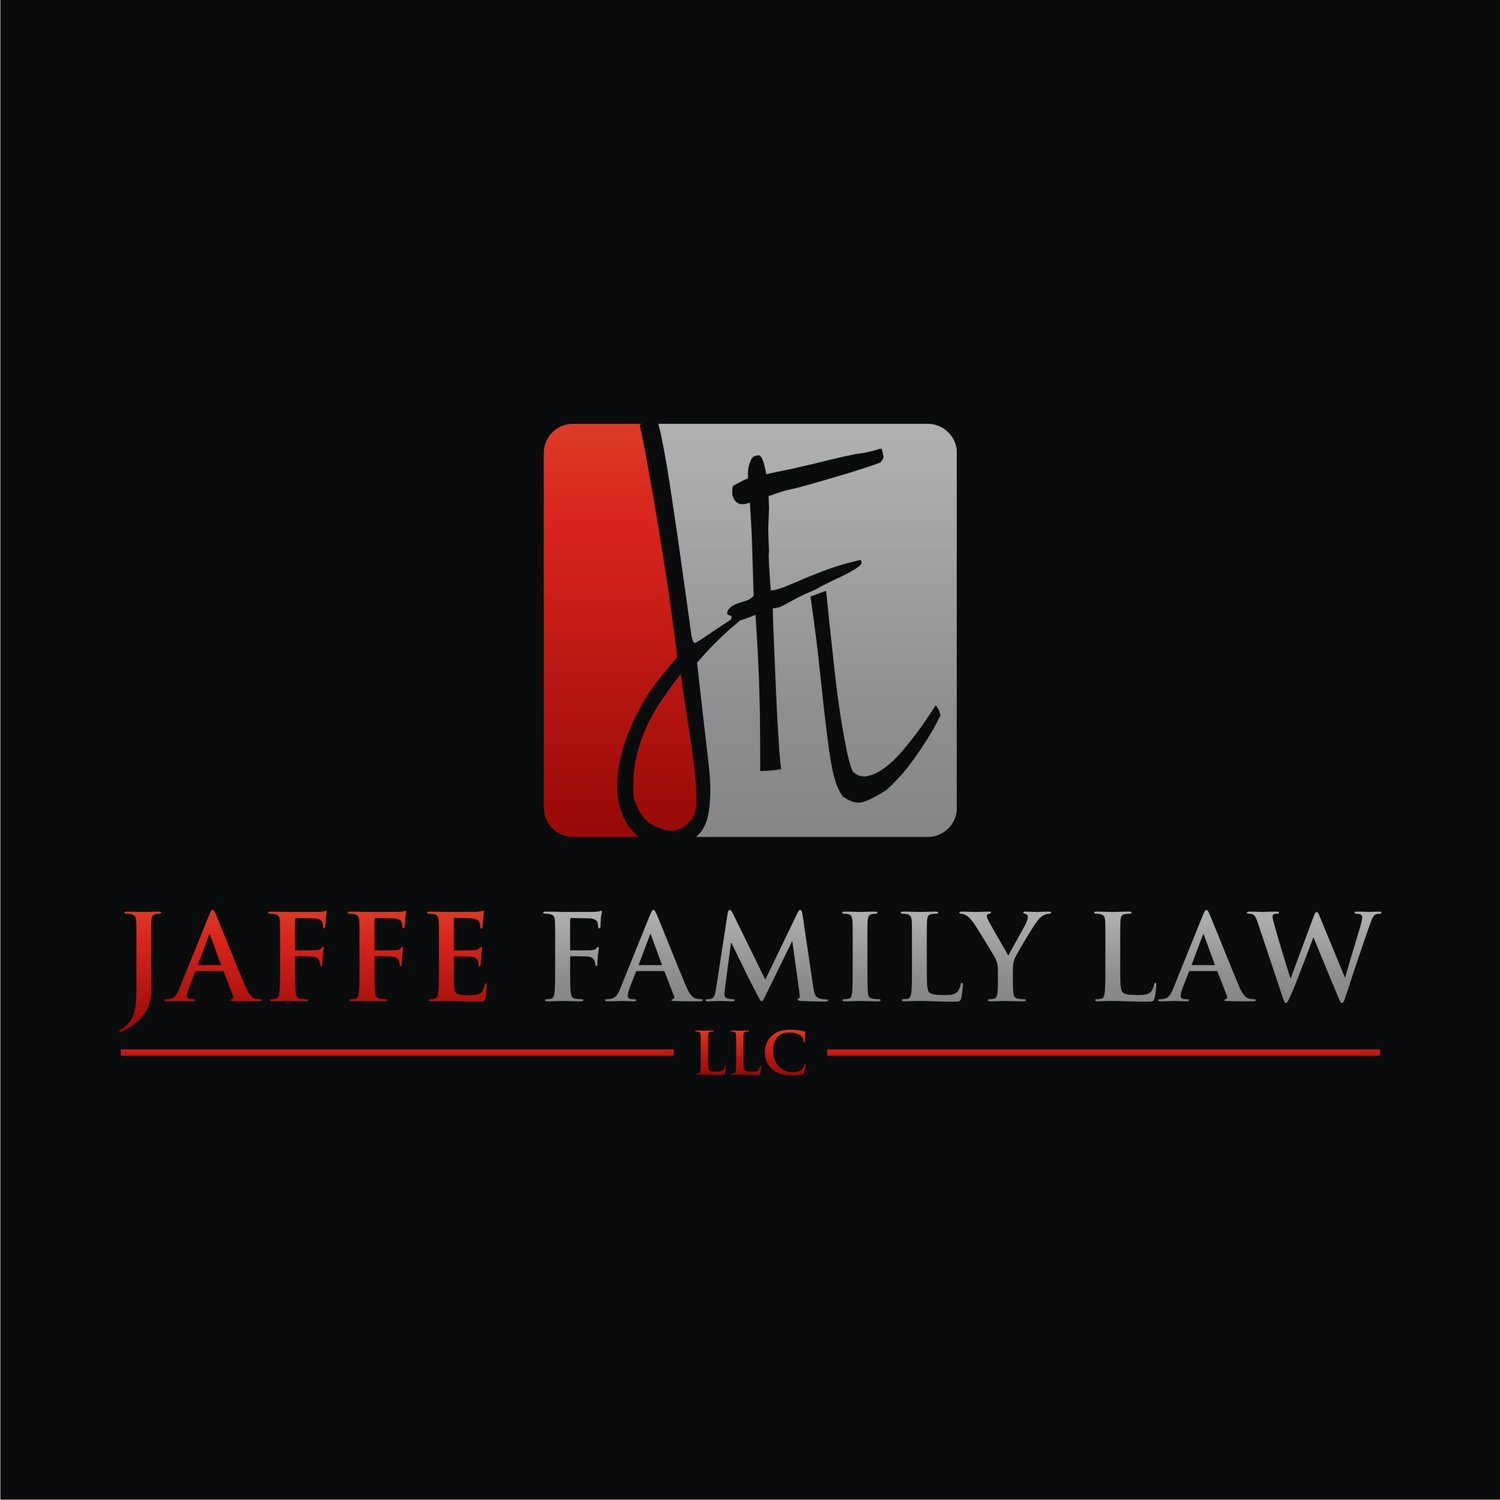 Adam S. Jaffe Georgia Divorce, Custody and Child Support Attorney